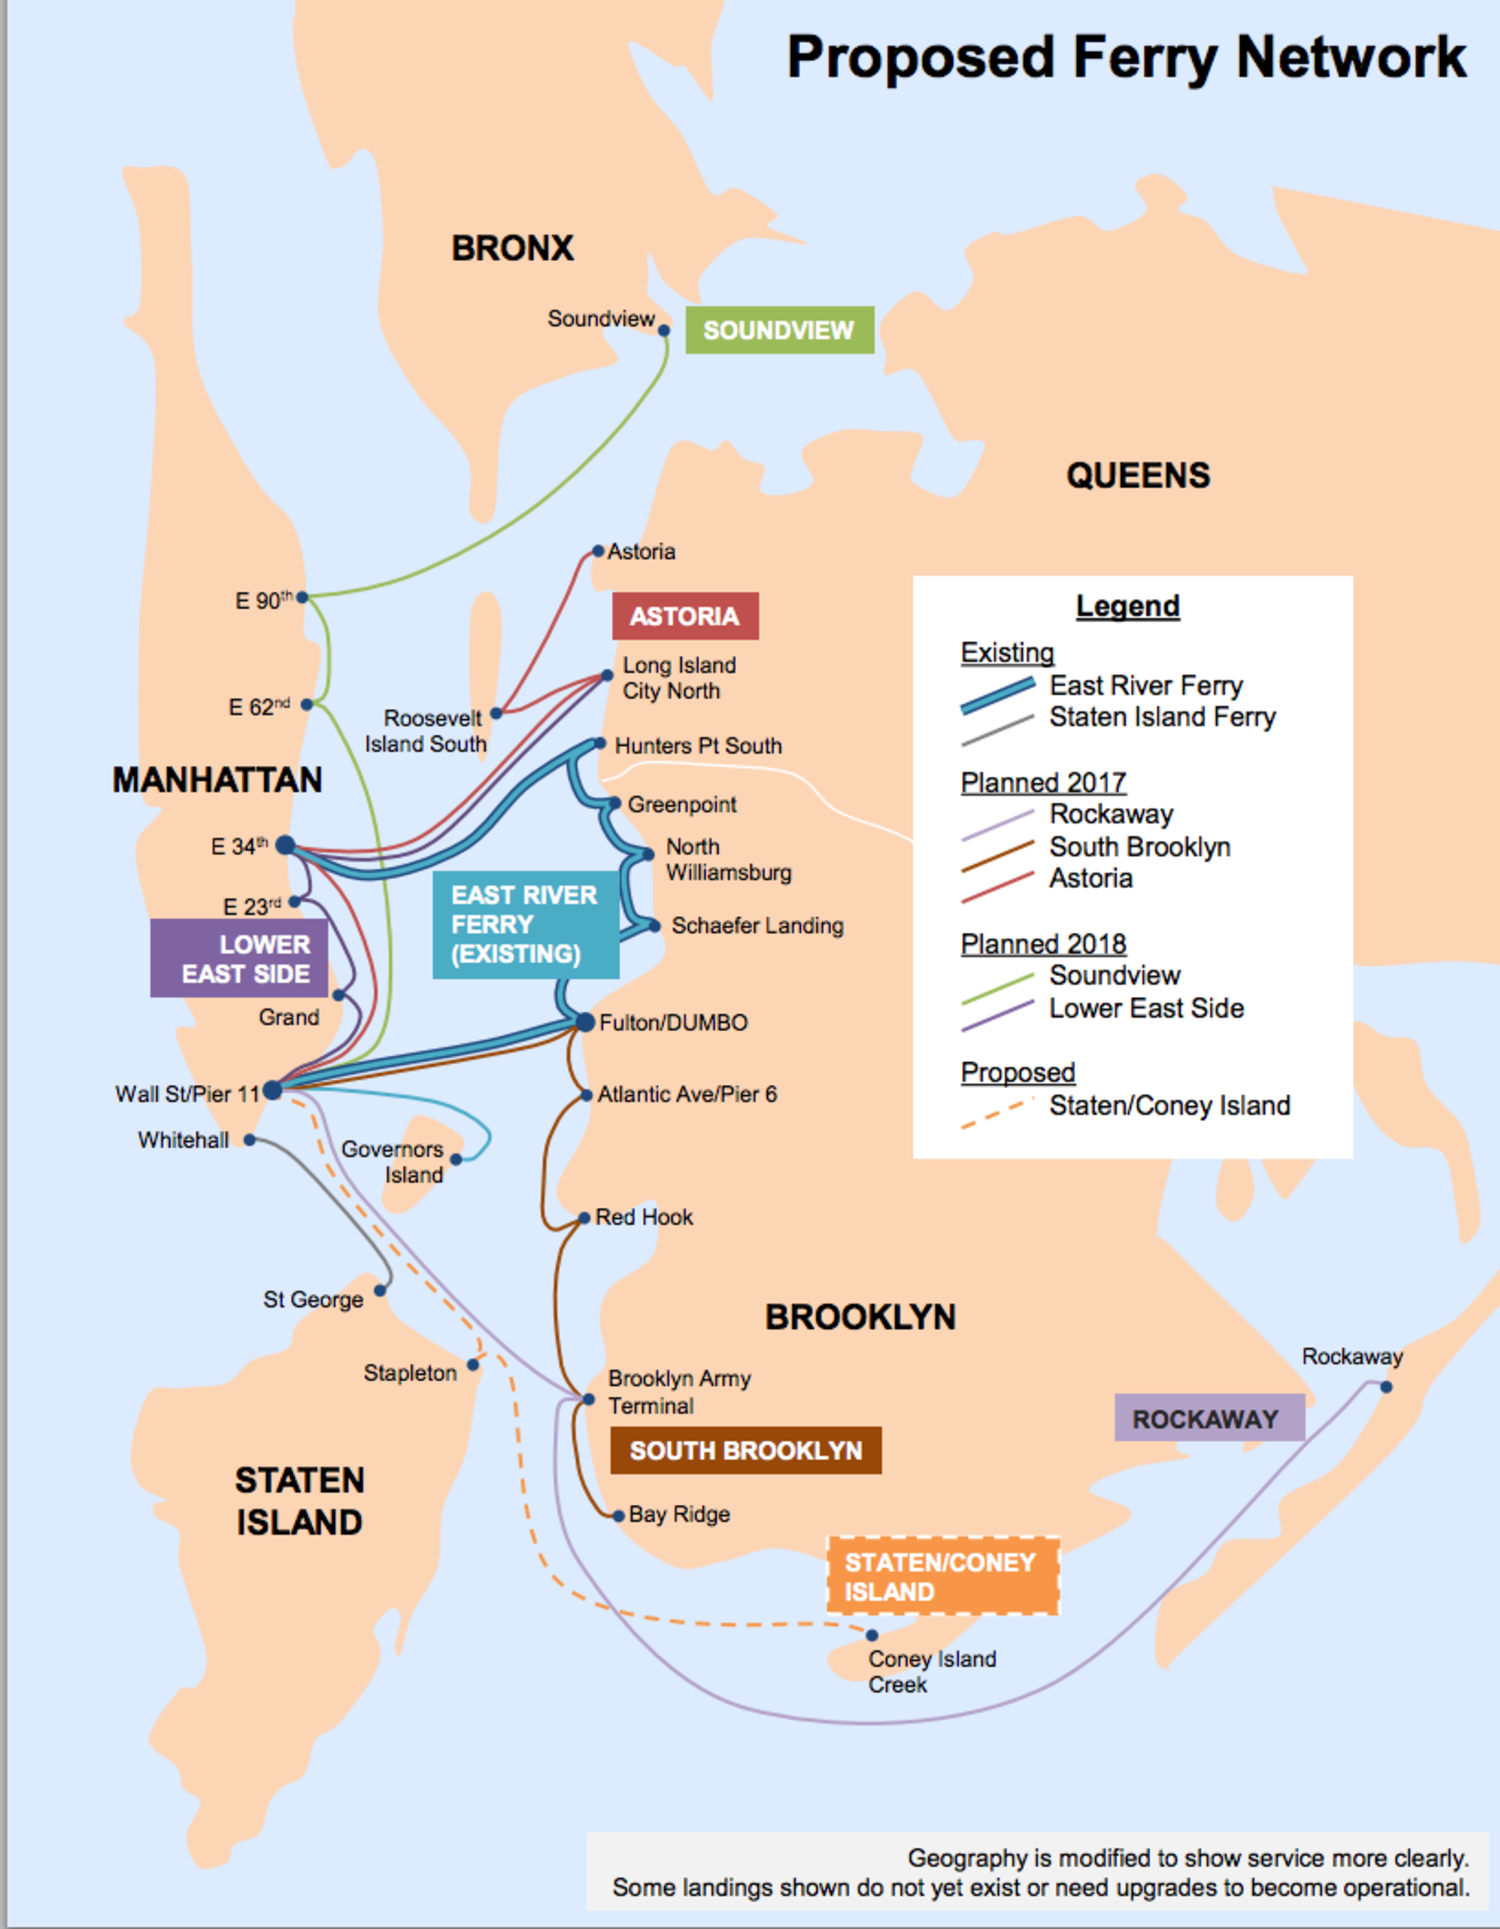 Proposed Ferry Network